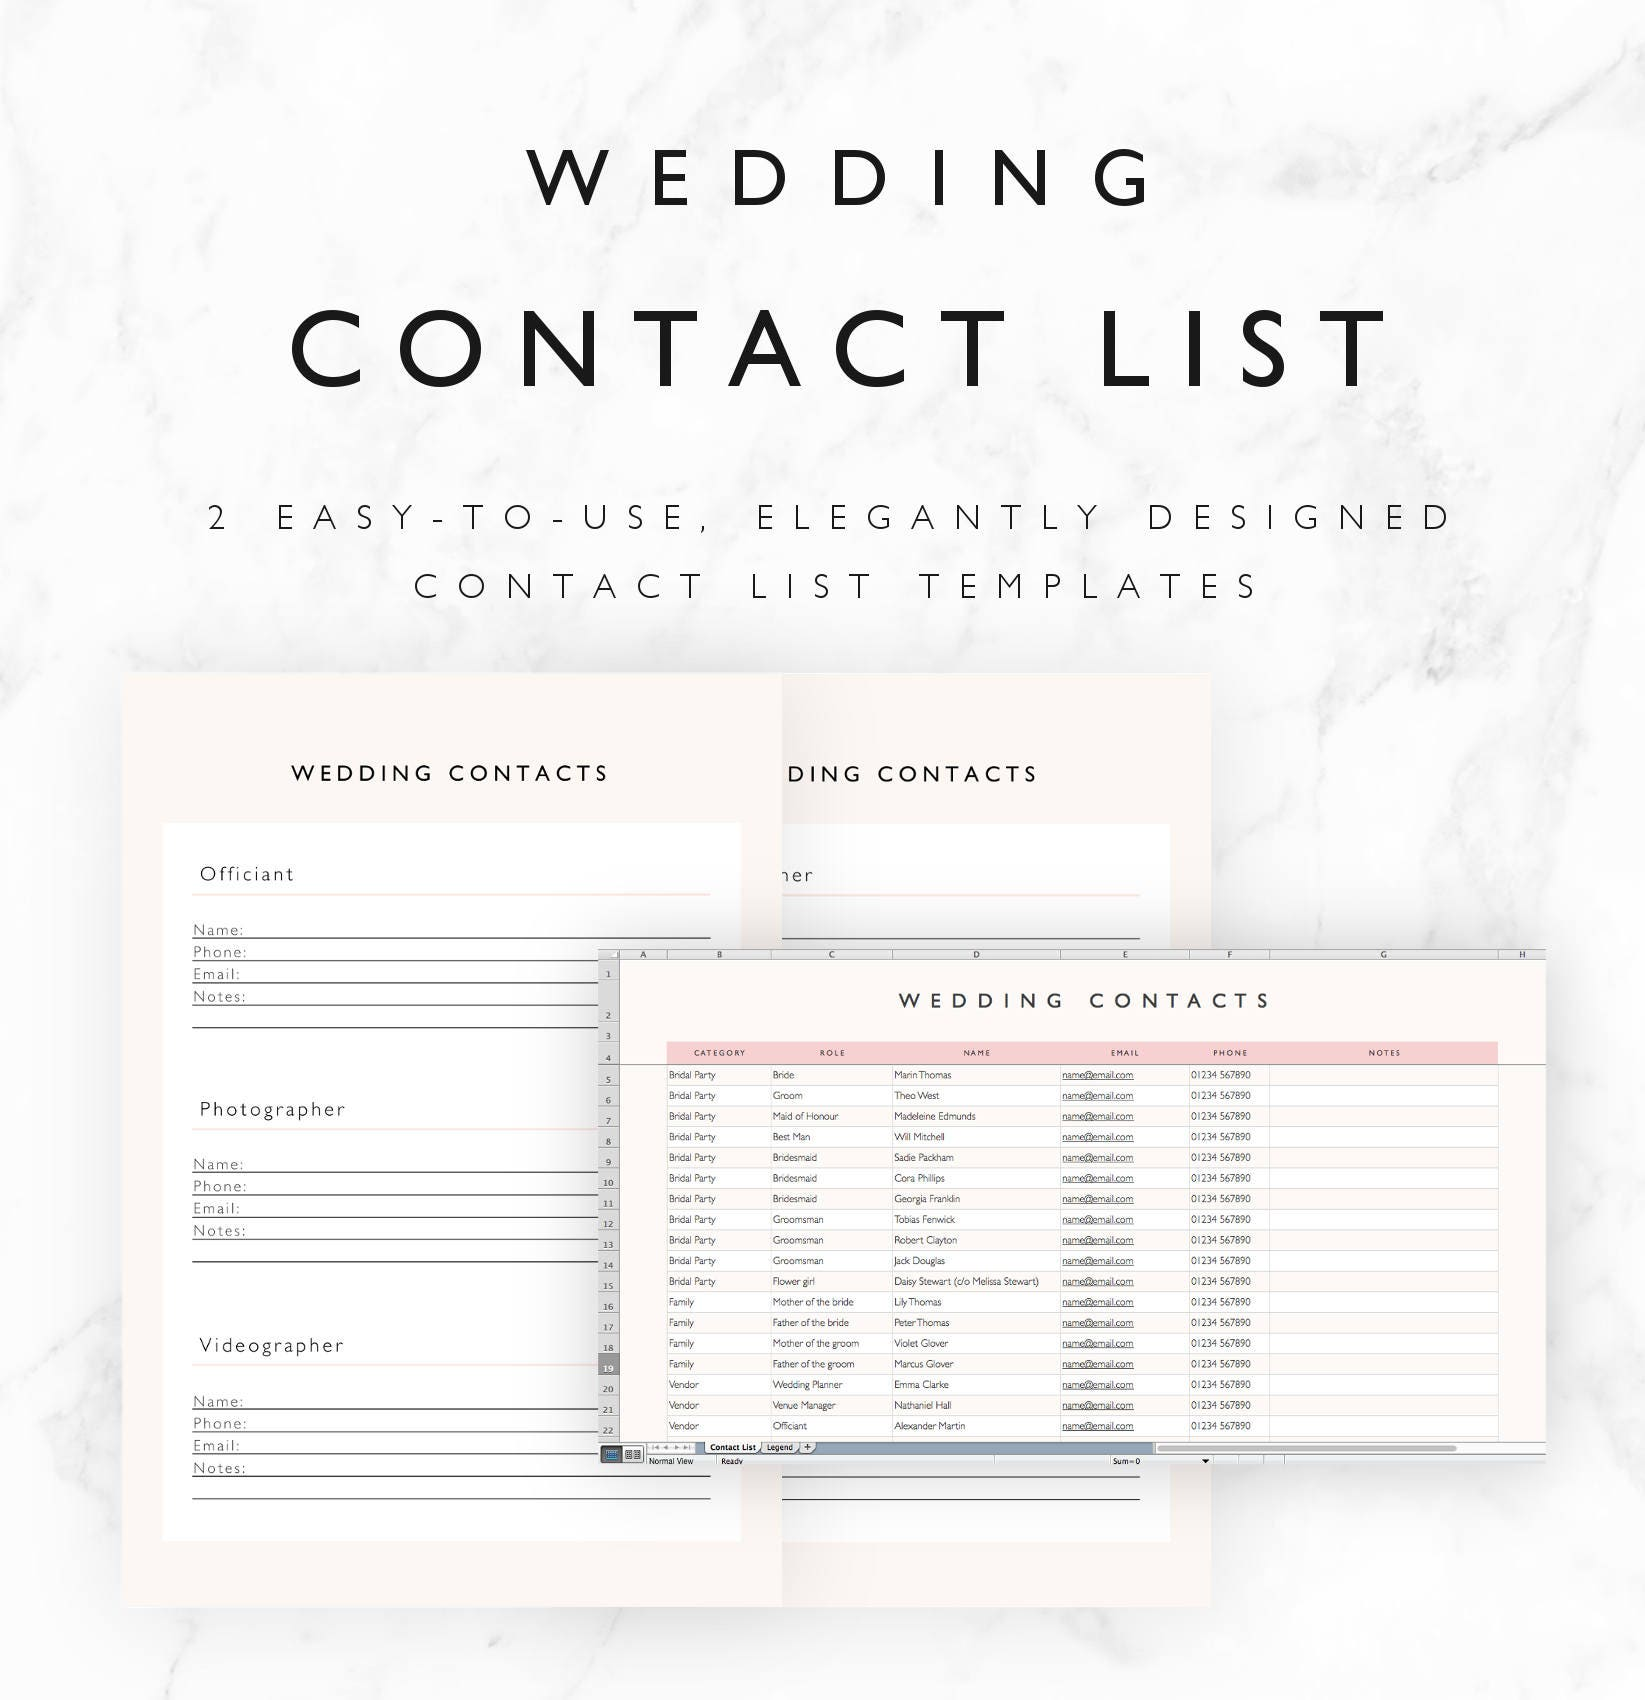 Wedding contact list template excel spreadsheet printable zoom alramifo Gallery